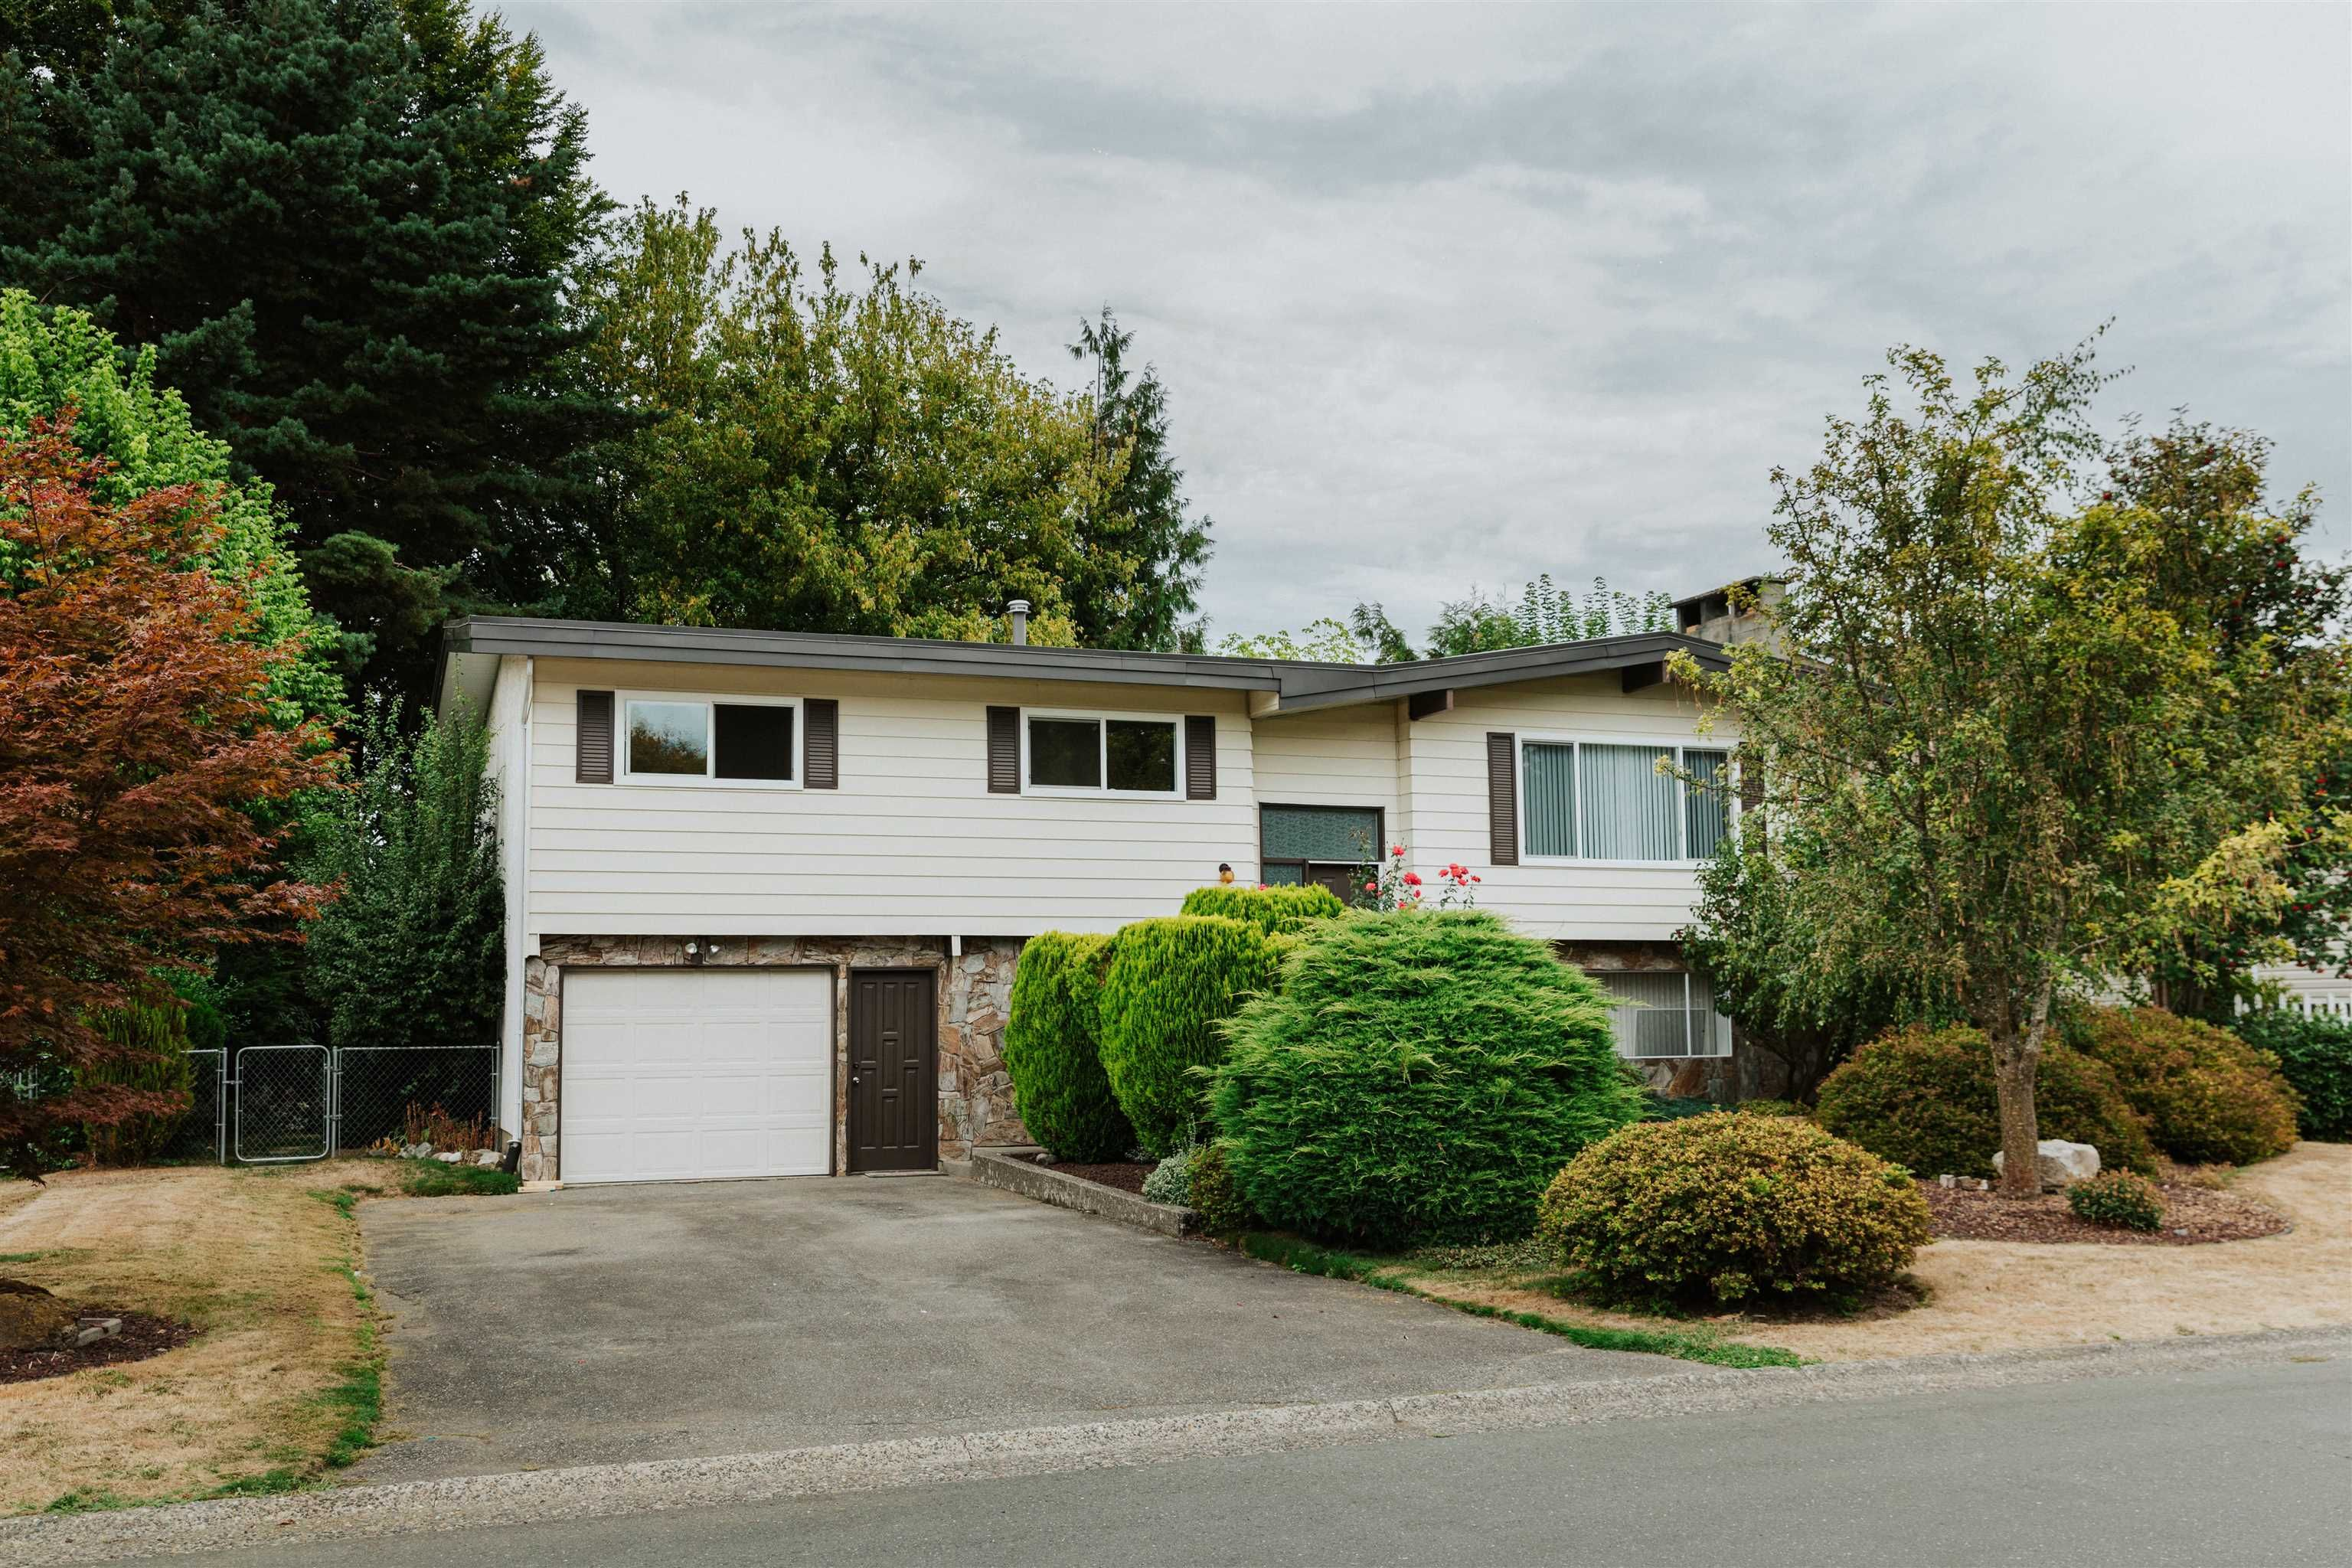 Main Photo: 45197 MOUNTVIEW Way in Chilliwack: Sardis West Vedder Rd House for sale (Sardis)  : MLS®# R2615725